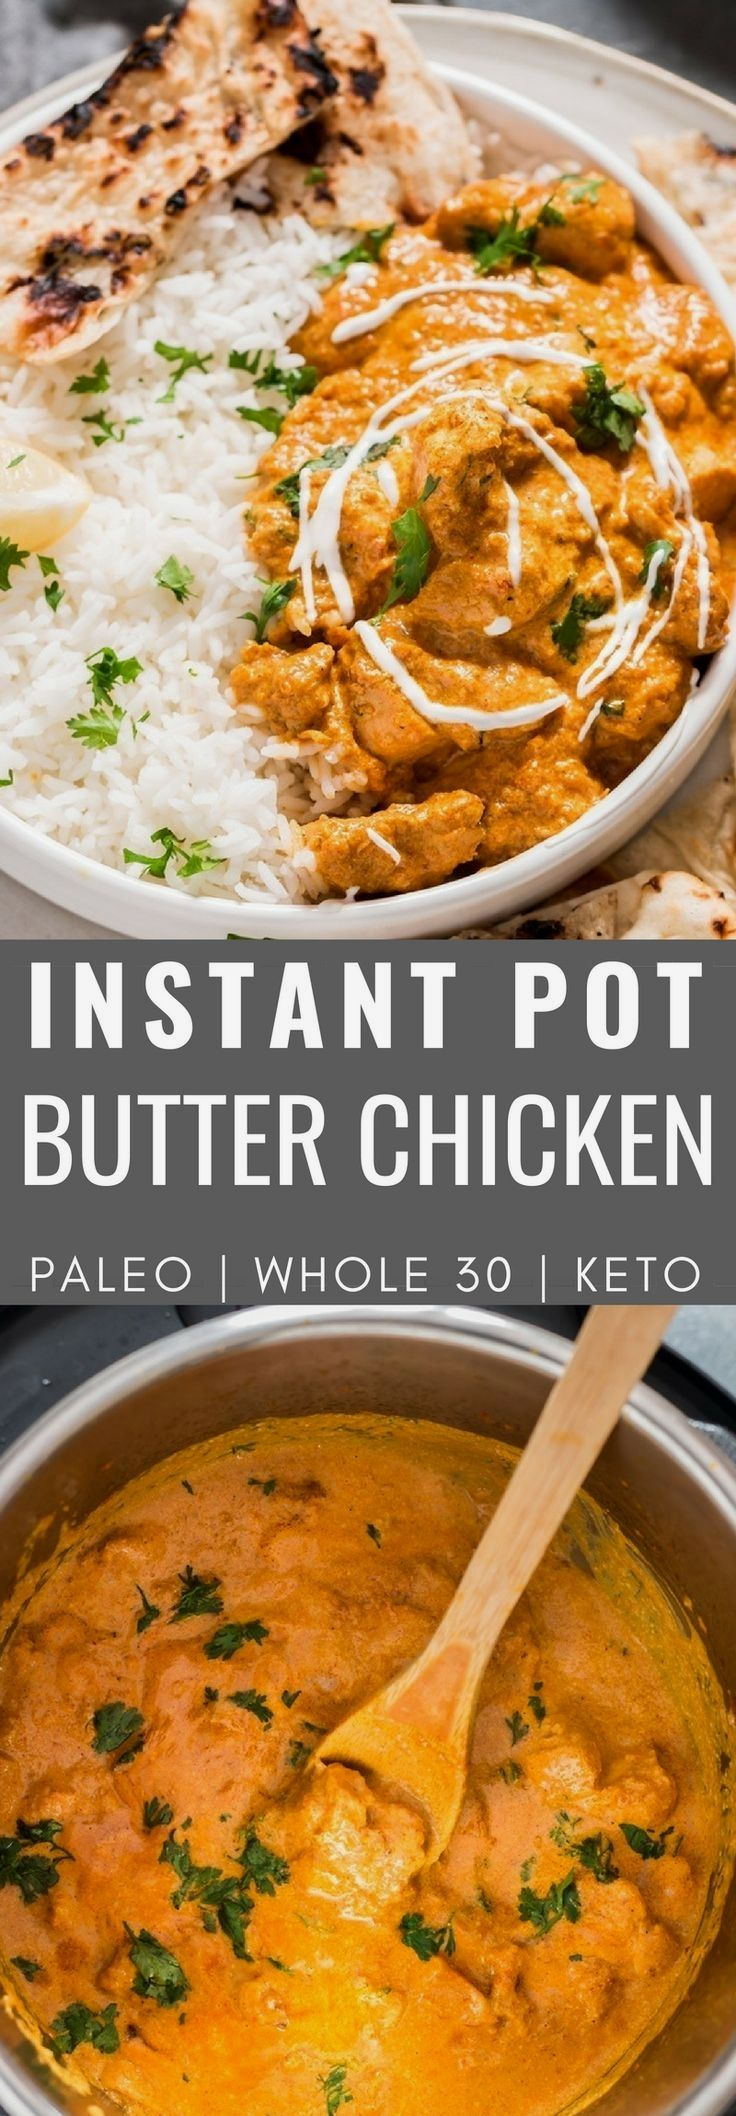 Make restaurant style Instant Pot butter chicken with authentic taste following this Indian butter chicken recipe. This is quick and easy Paleo Instant Pot Butter Chicken recipe . It's rich, creamy, not too spicy, buttery and packed full of flavors. 15 Awesome Keto Instant Pot Ideas #keto_diet_recipes #instantpotchickenrecipes